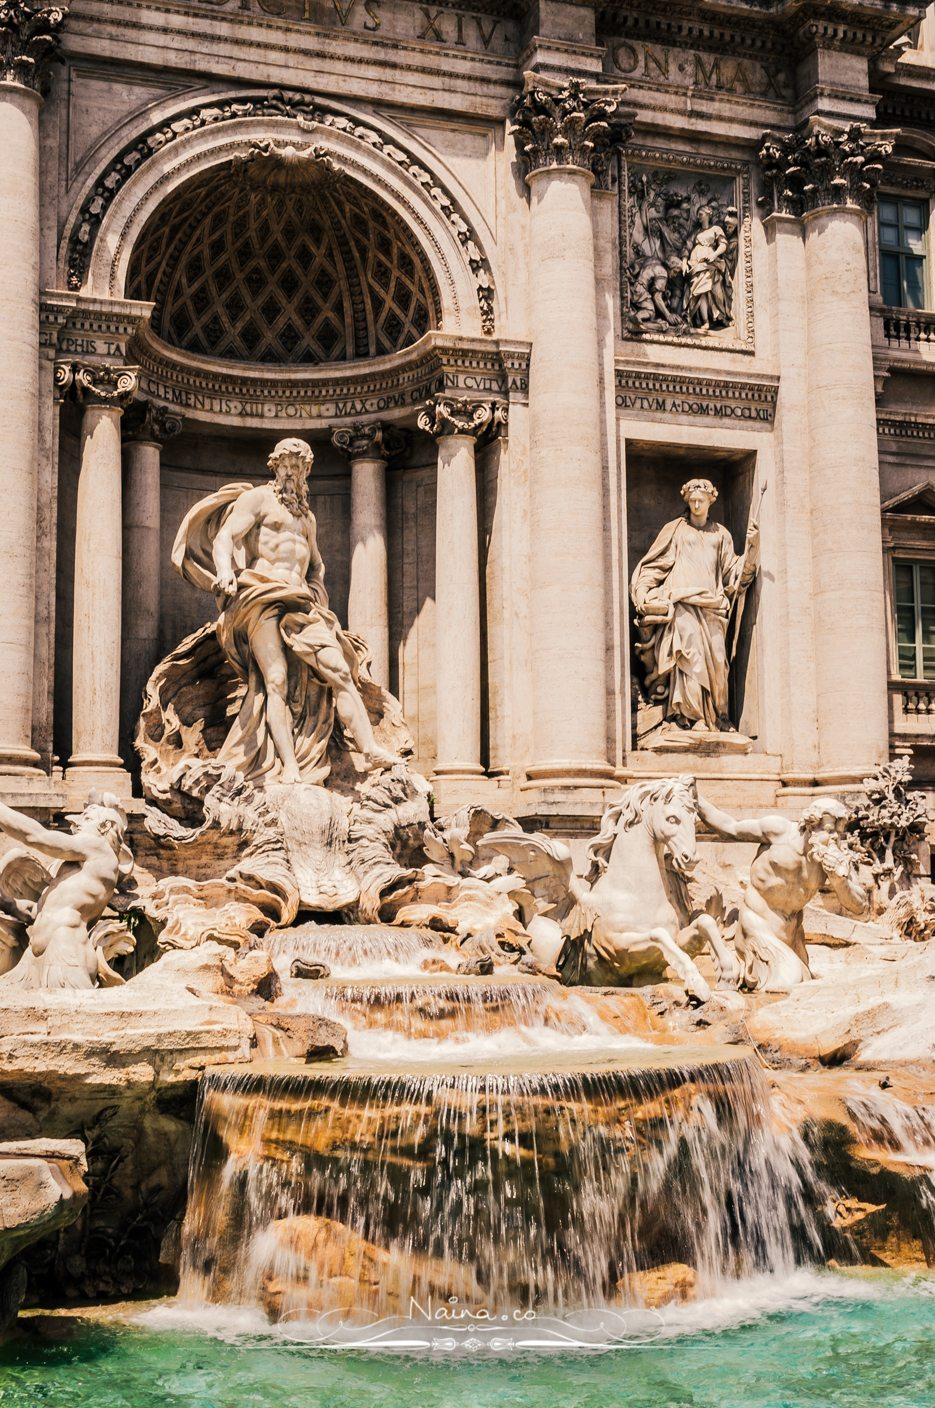 Trevi-Fountain-Rome-Italy-Fendi-Restoration-Lifestyle-Luxury-Photographer-Blogger-Naina.co-Travel-Photography-3